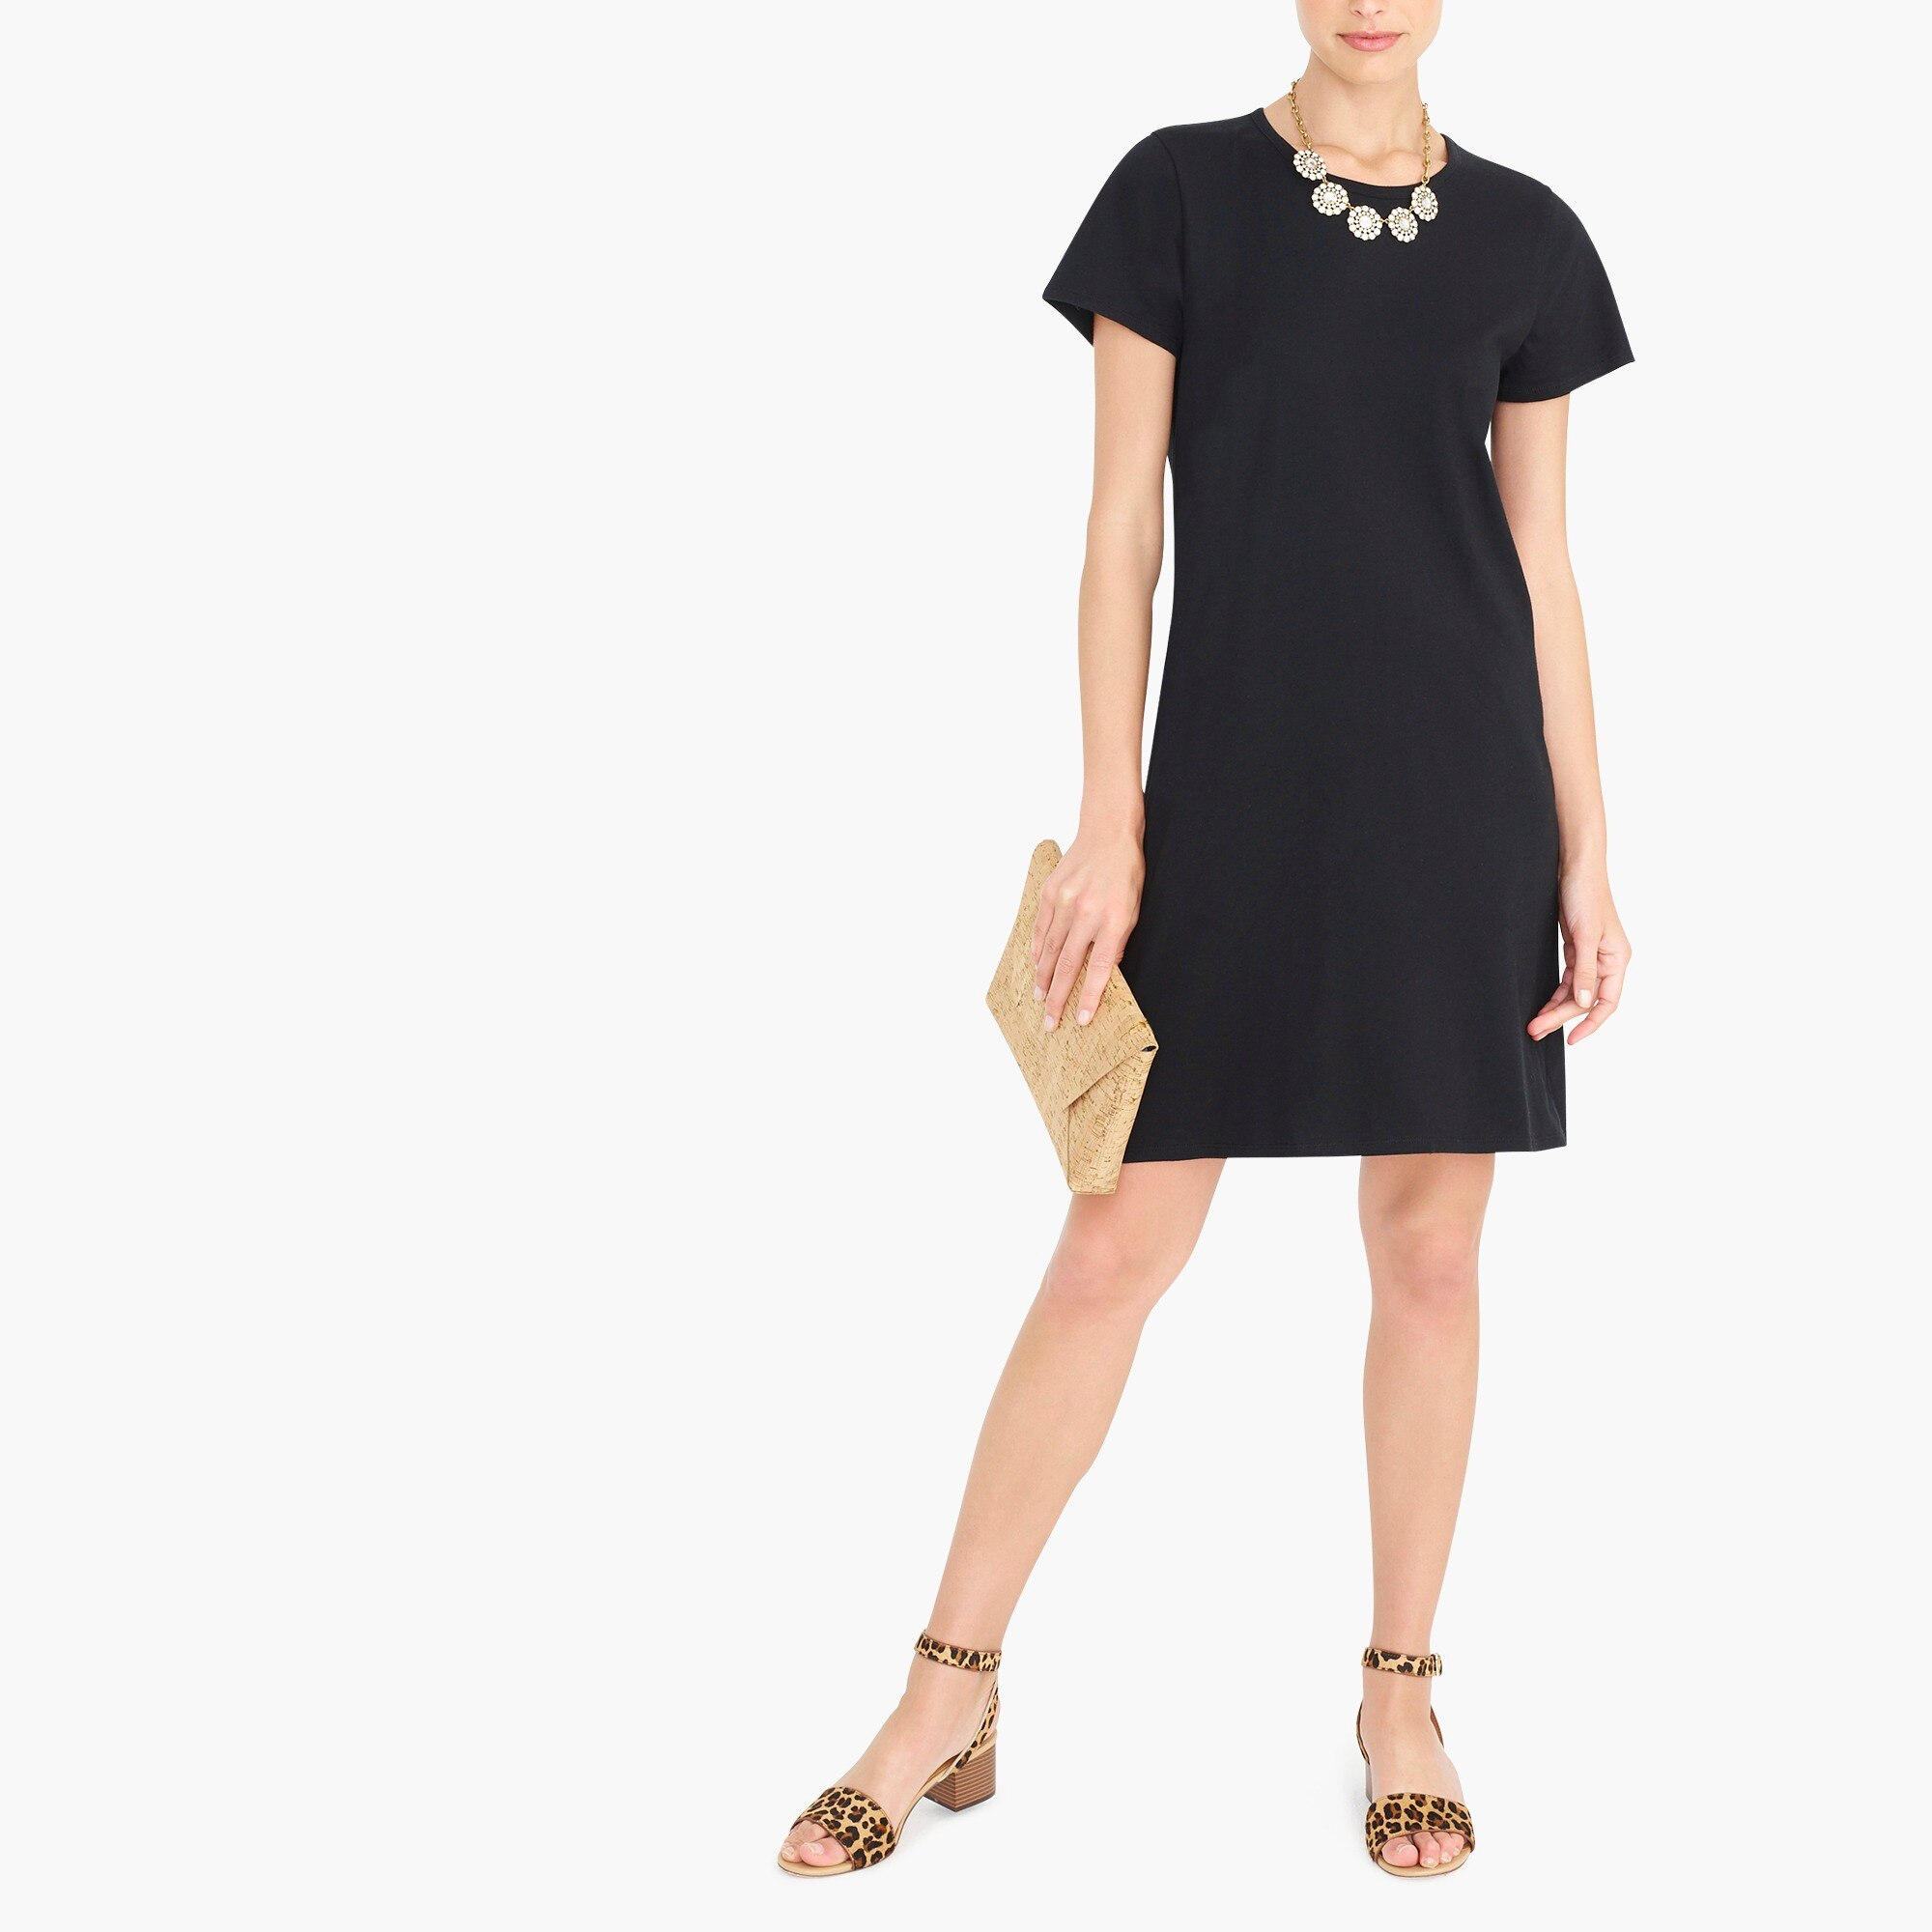 factory womens T-shirt dress